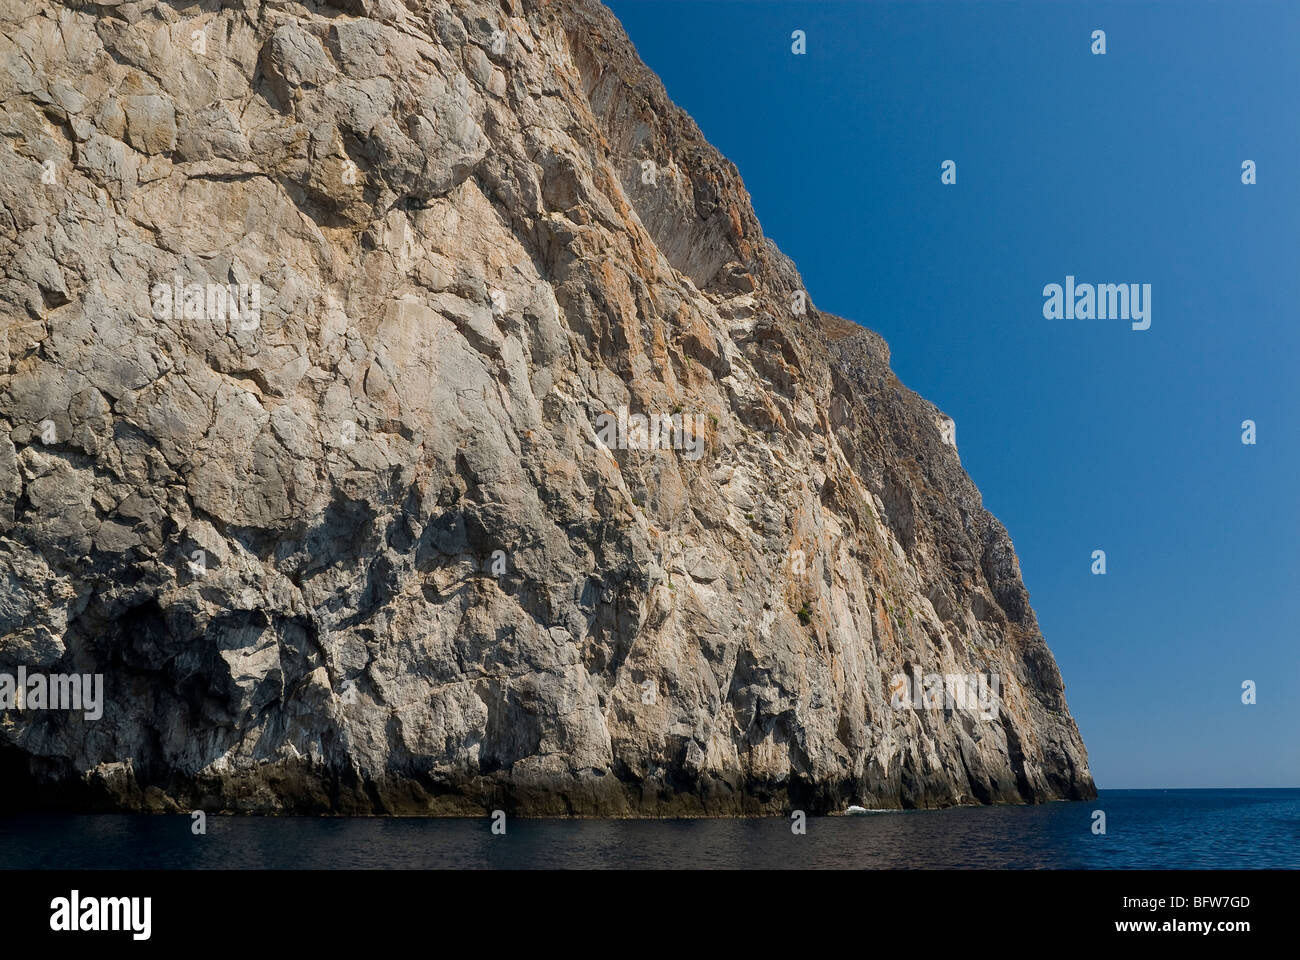 View of Chytra rocky islet, Kythira, Greece. - Stock Image